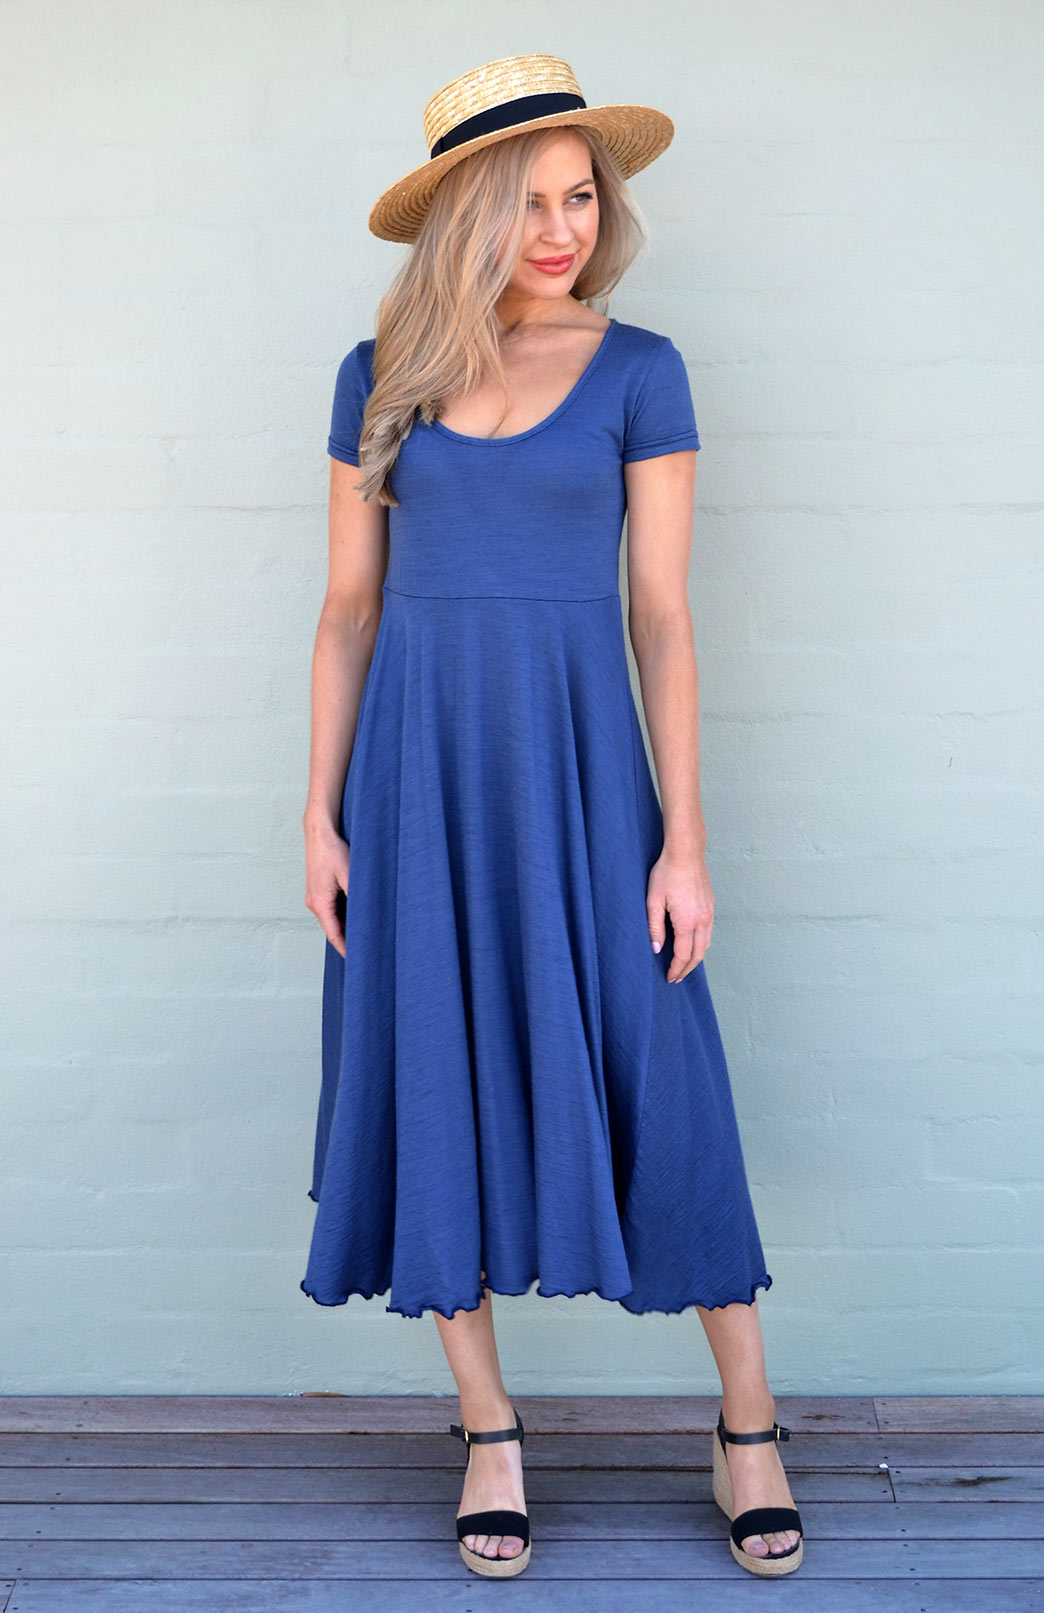 Carrie Dress - Women's Cap-Sleeve Blue Wool Summer Dress - Smitten Merino Tasmania Australia